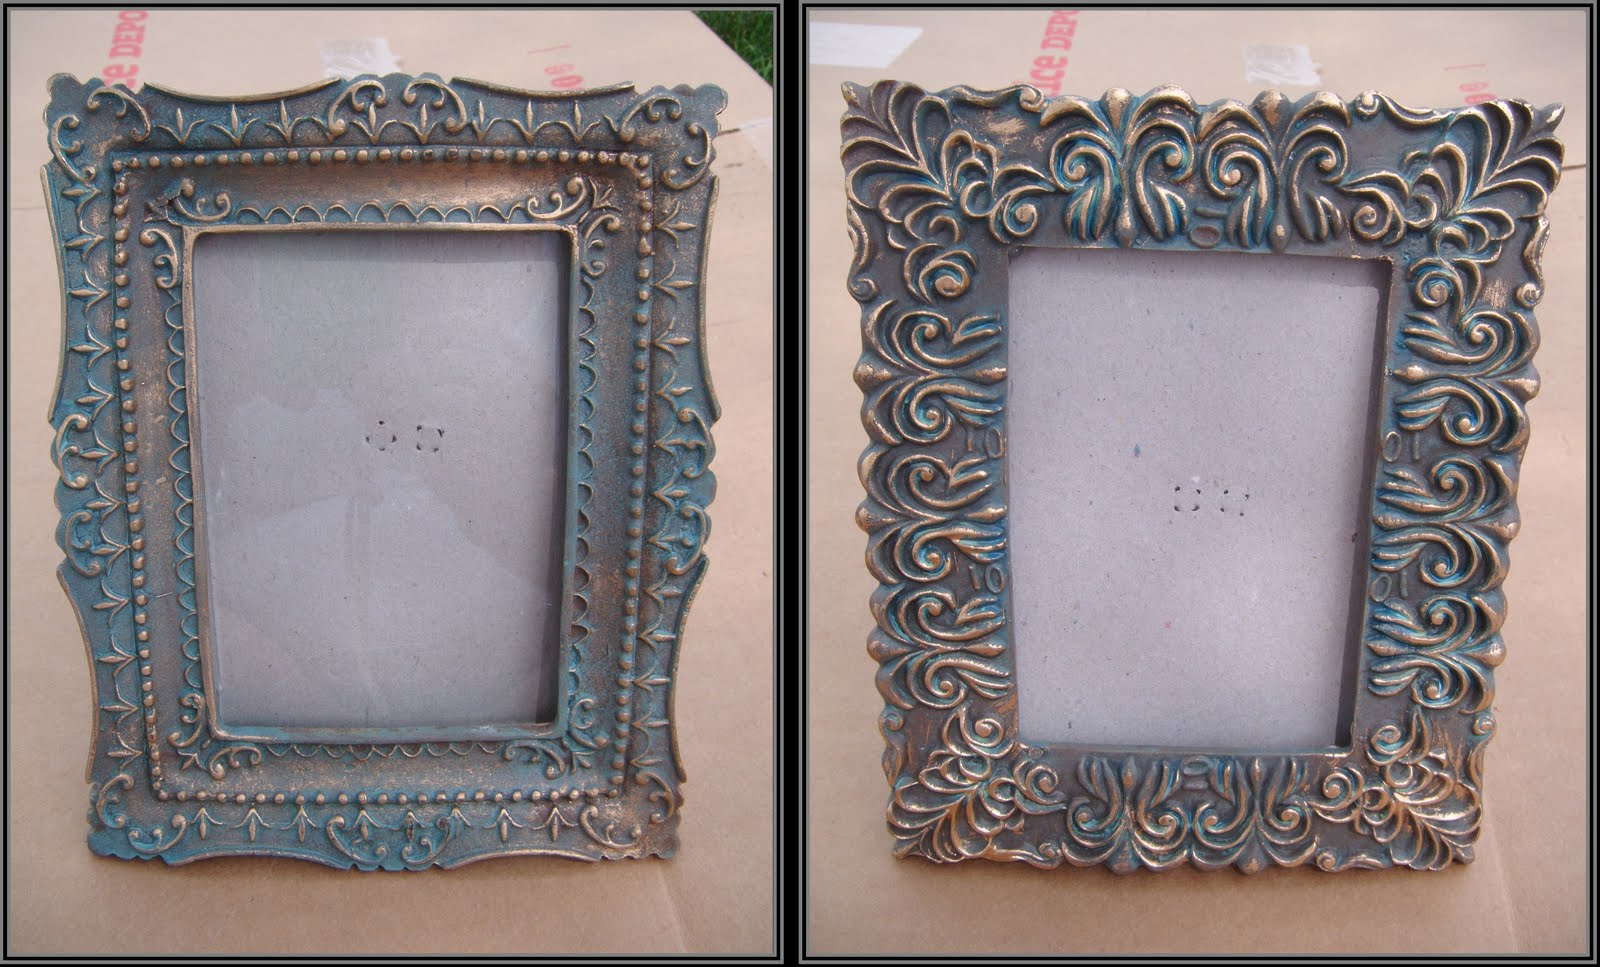 my first step was to spray paint my frames with valspar sky blue